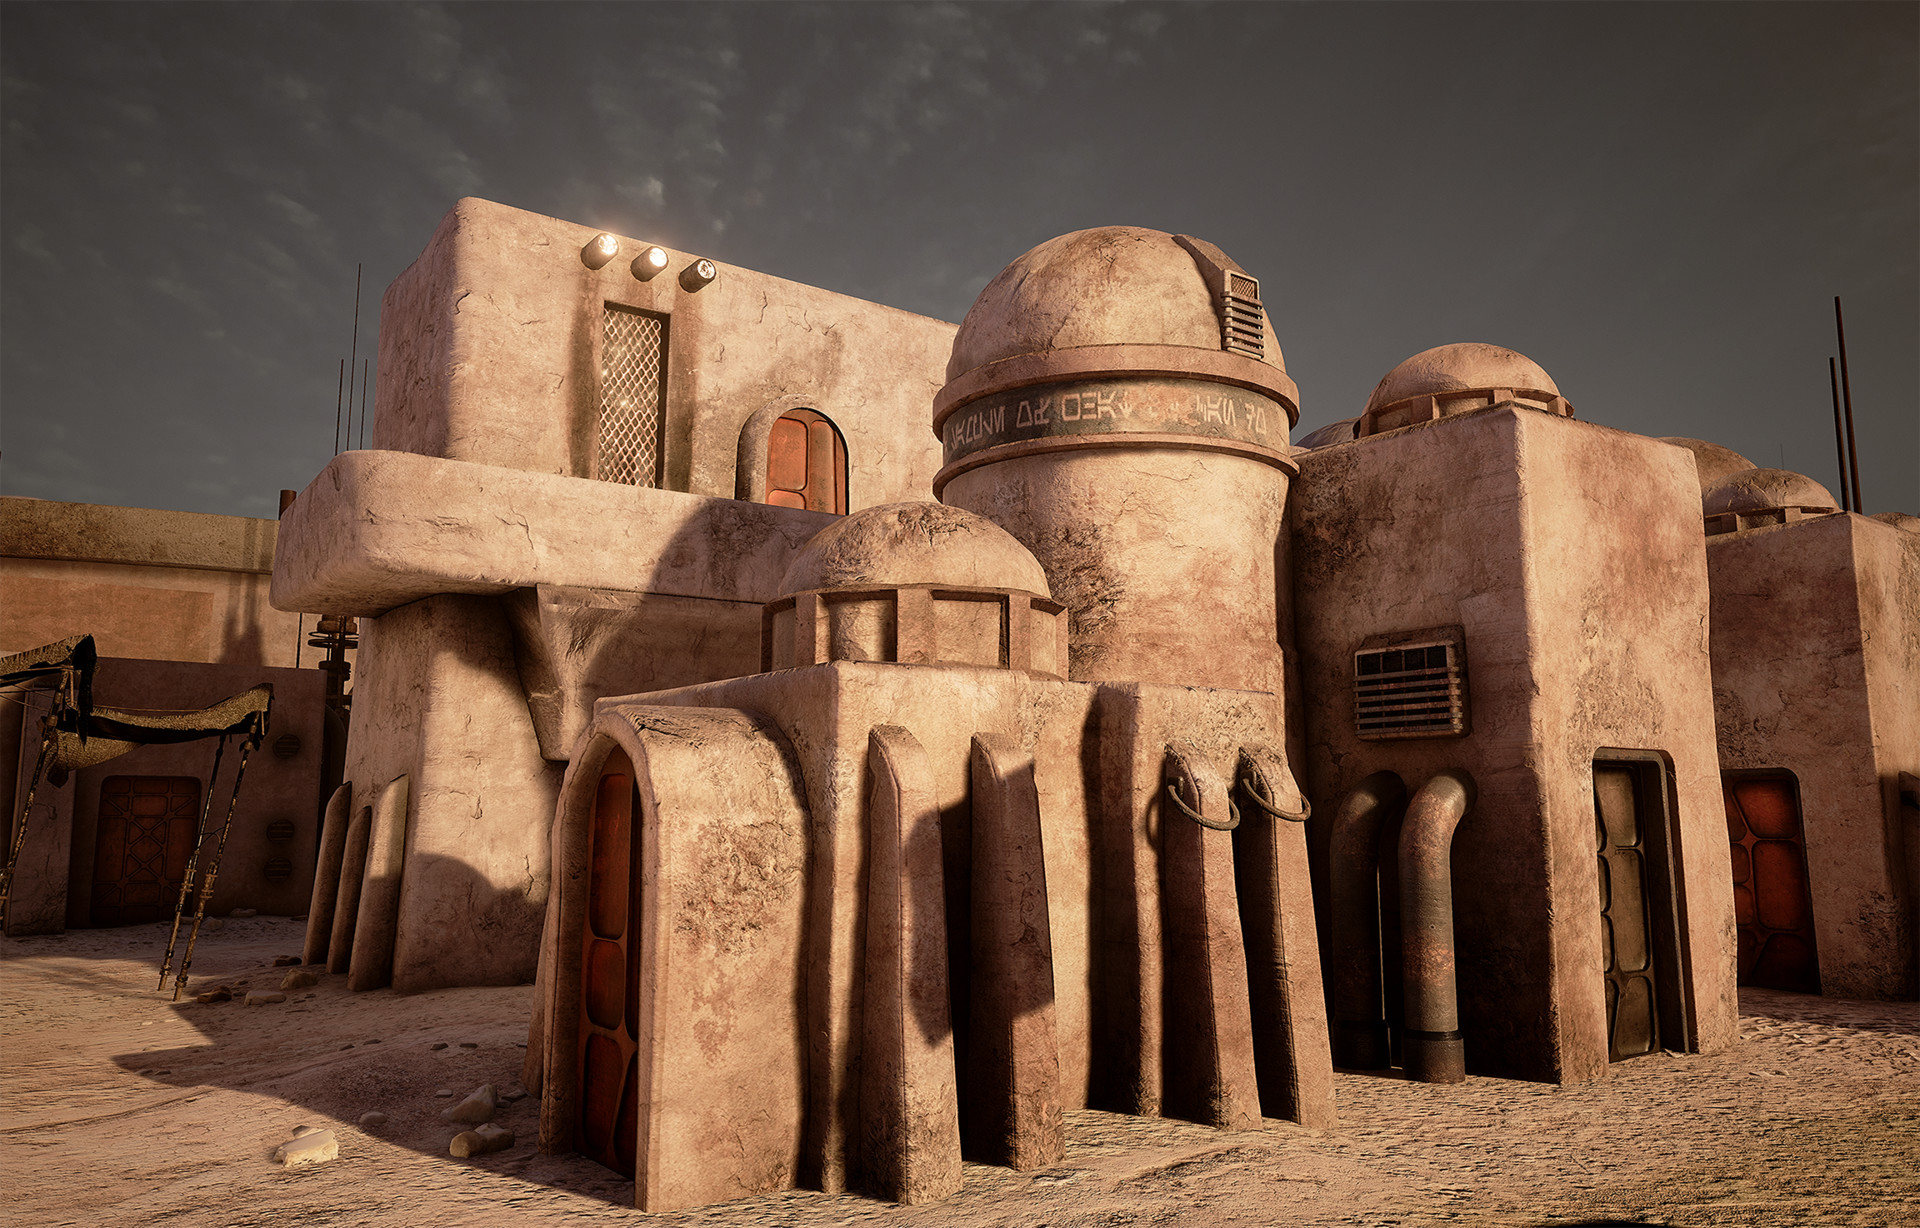 Buildings: model, textures, shader